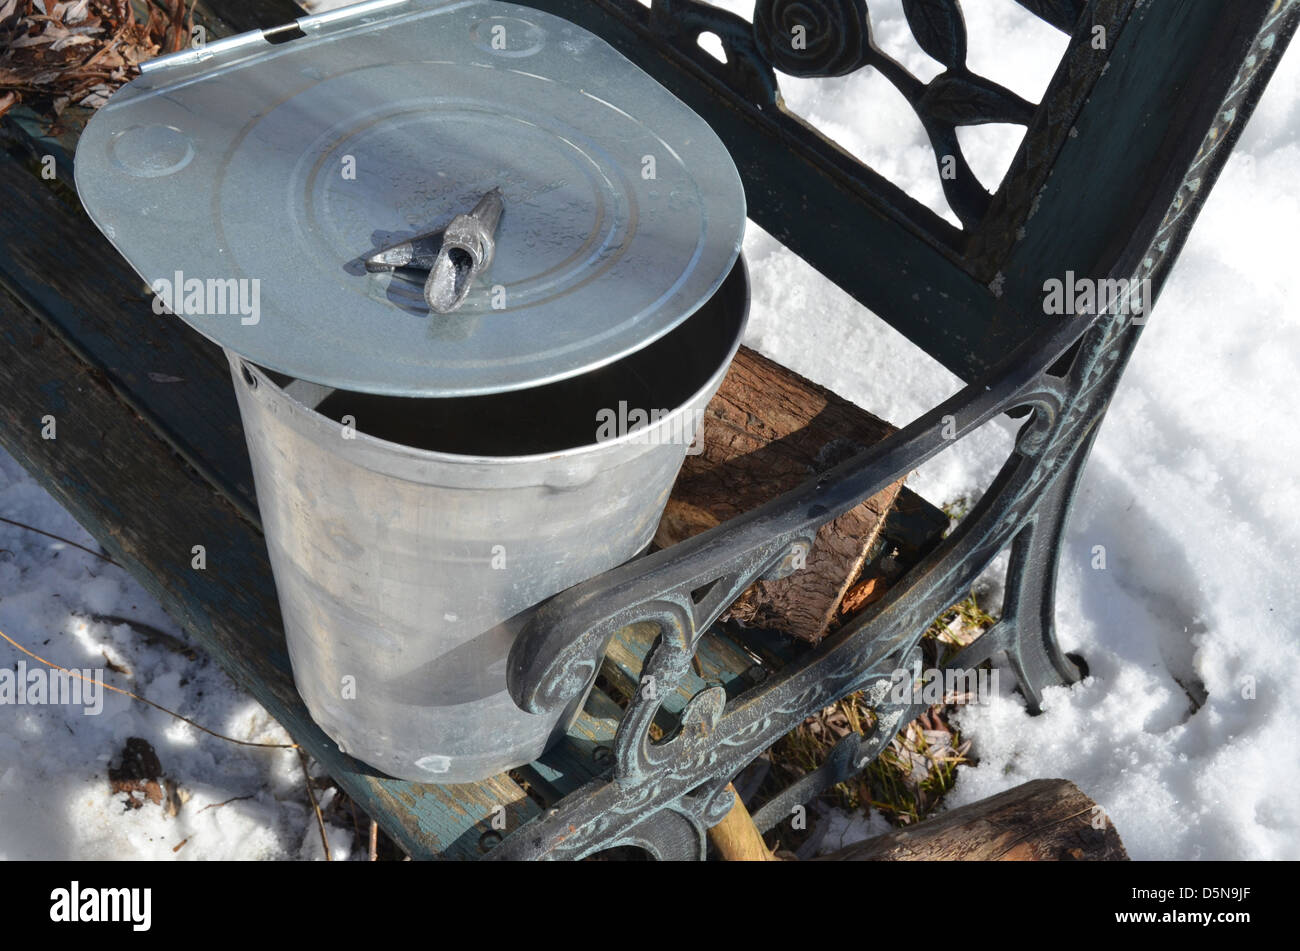 The tools for collecting maple sap - a spigot, cover and bucket, rest on an outdoor country bench. - Stock Image